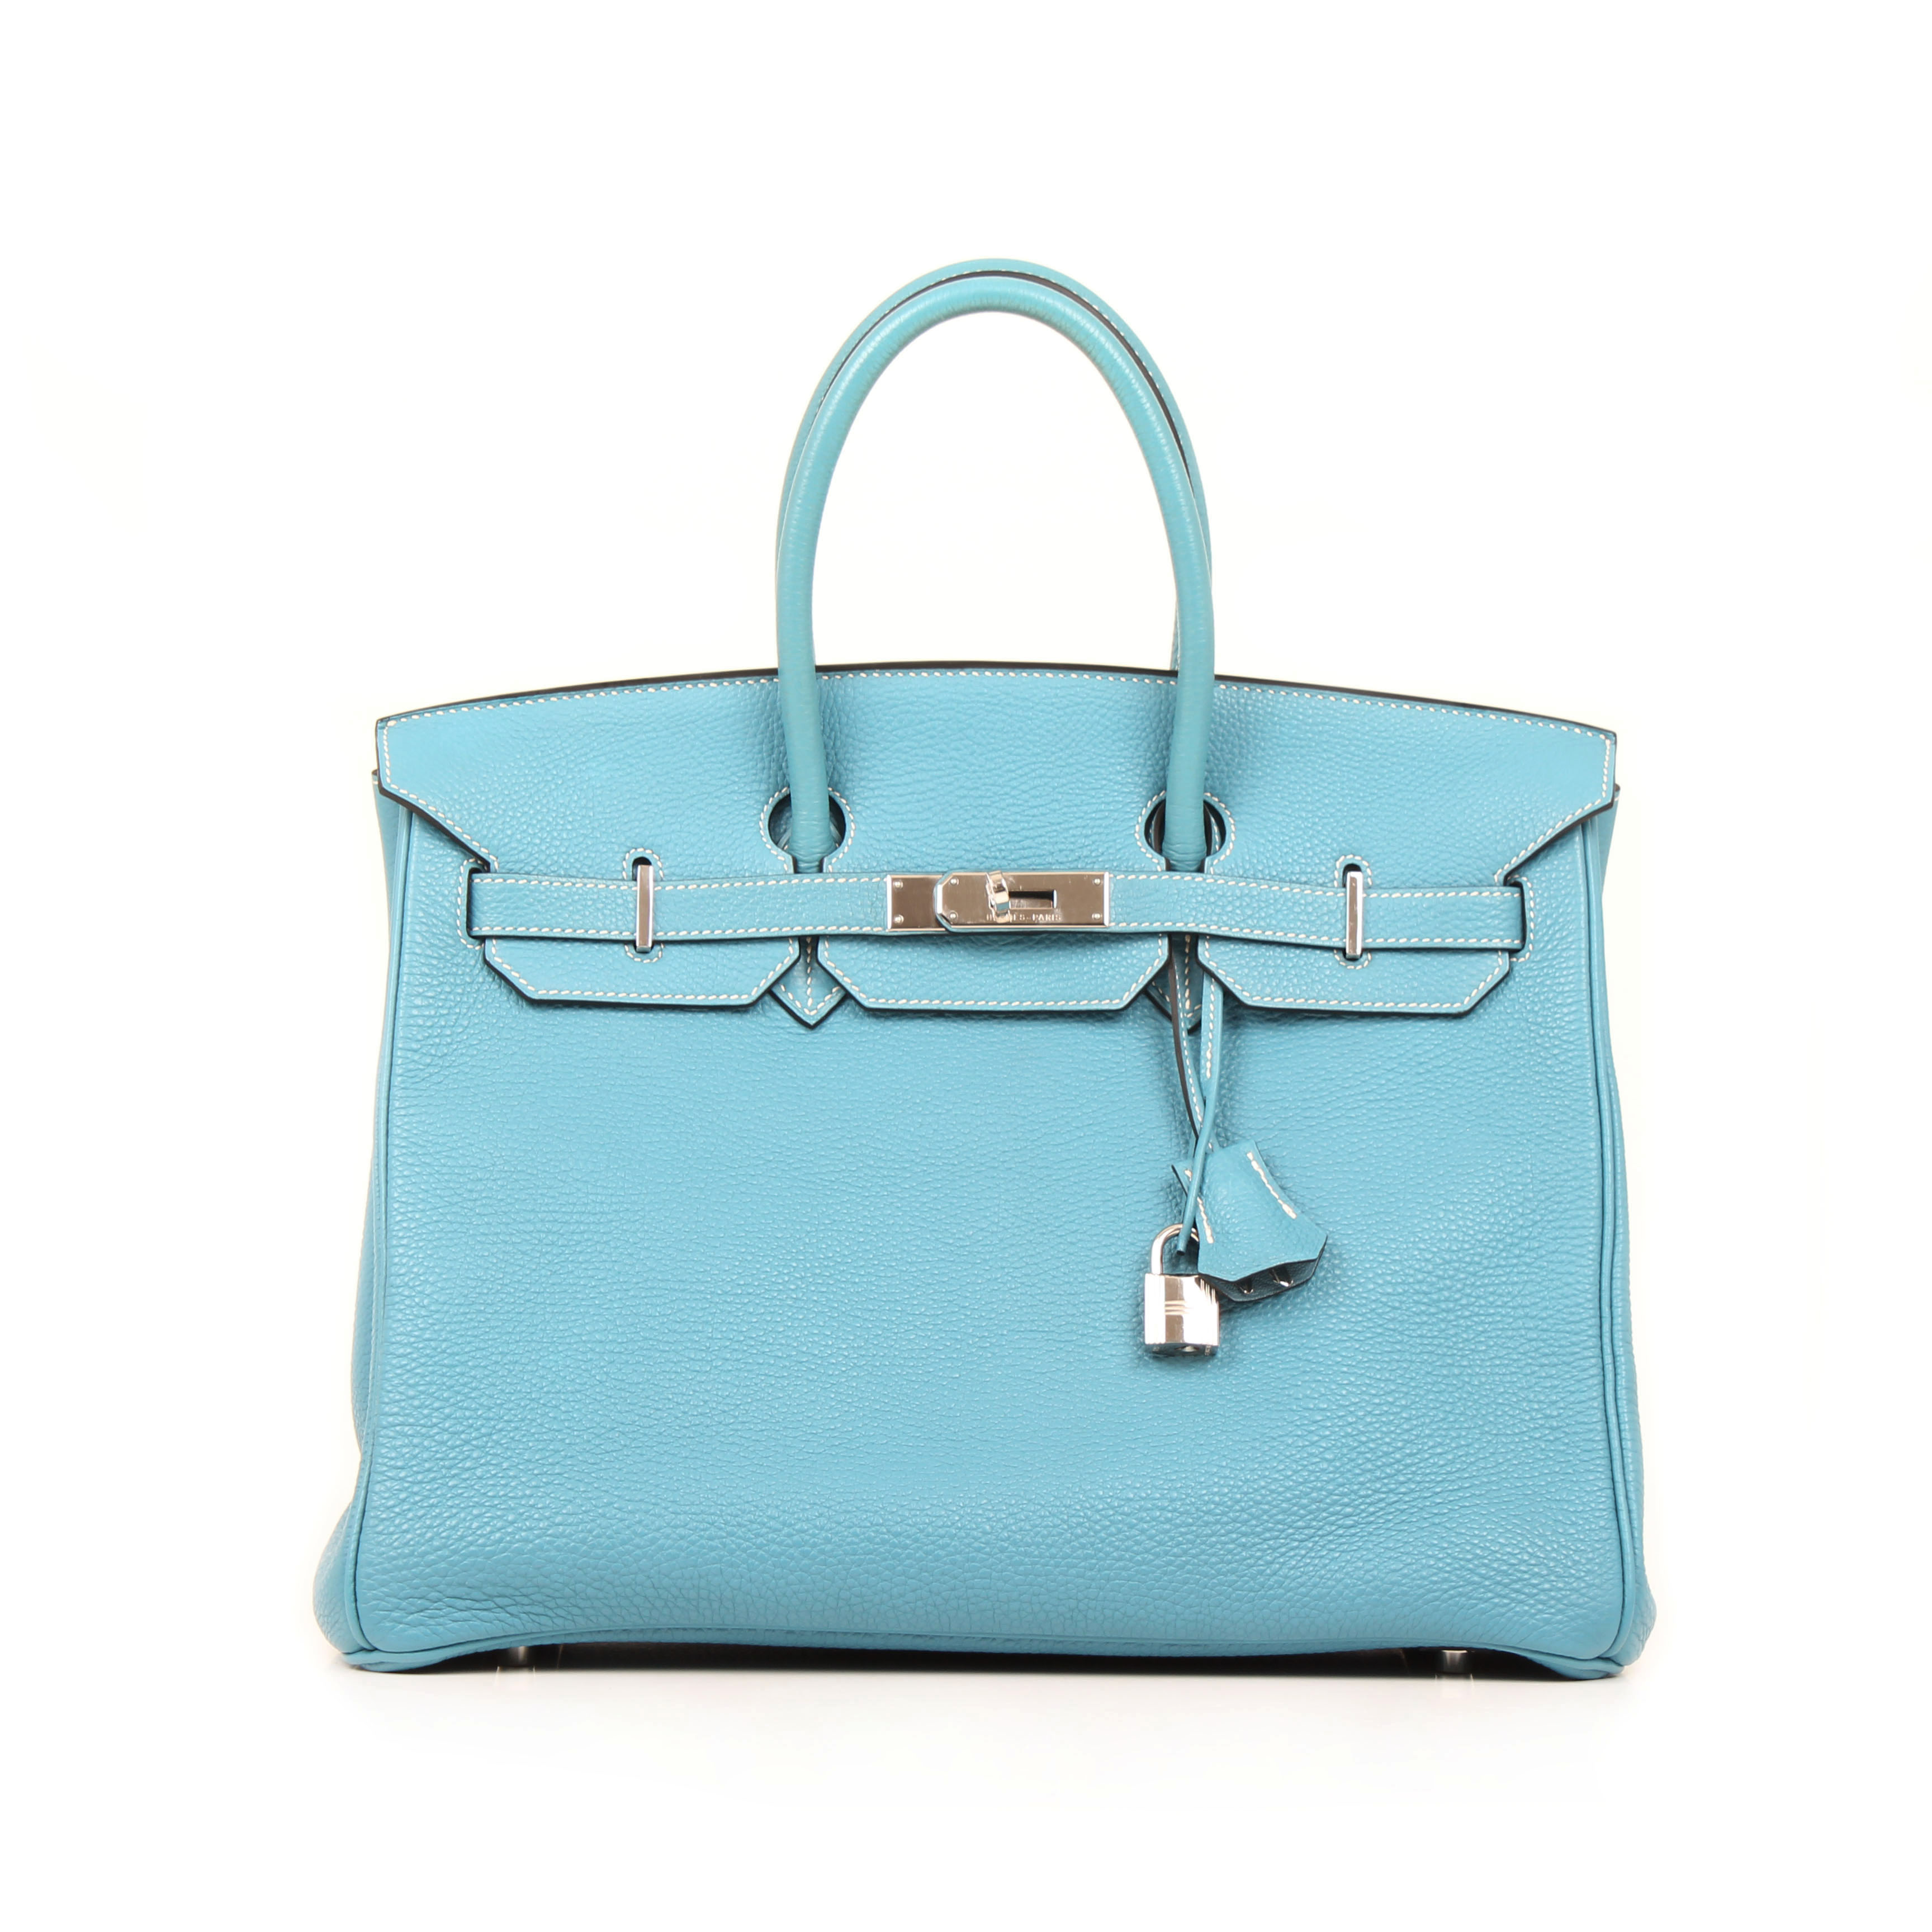 169ff32a17ab Hermès Birkin Bag 35 Togo Leather Blue Jean I CBL Bags